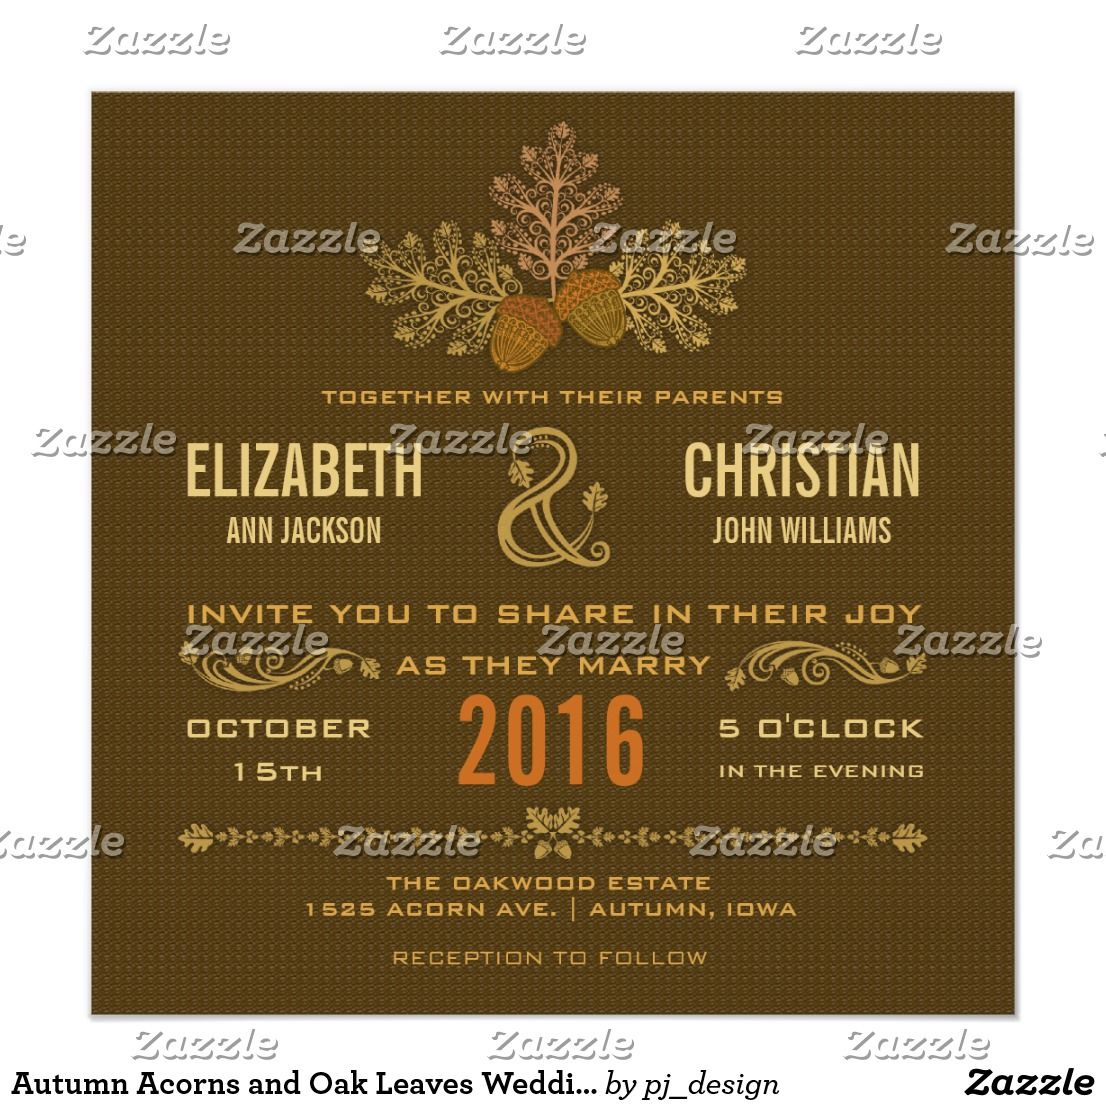 Autumn acorns and oak leaves wedding invitation modern stylized lacy